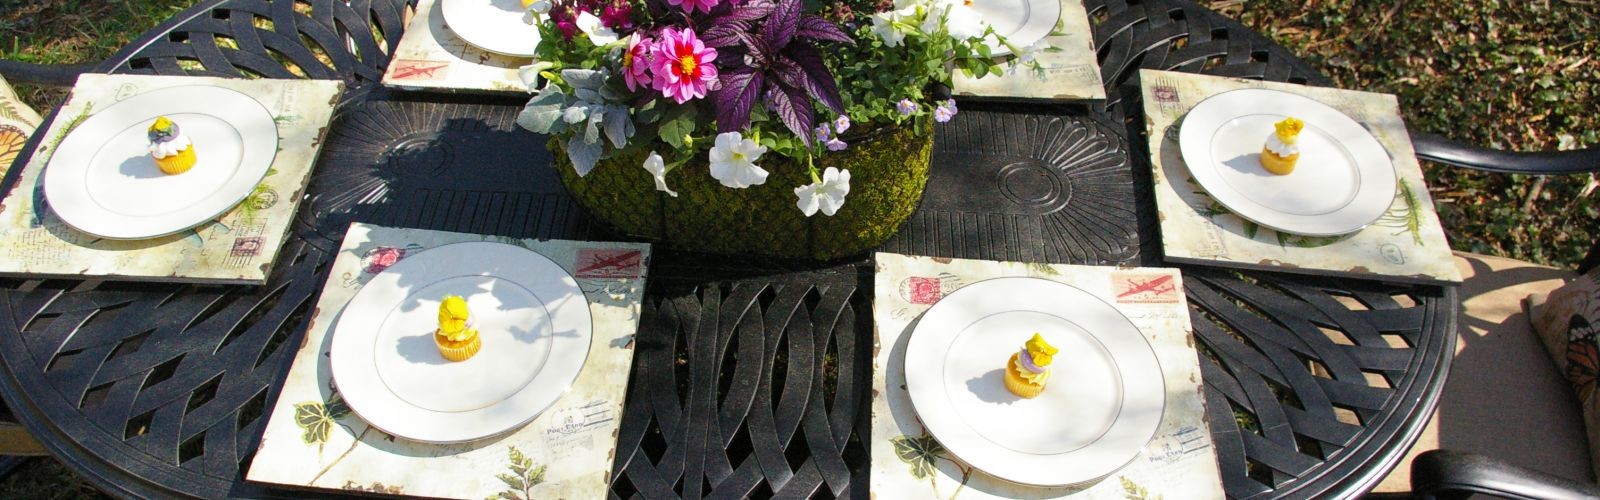 Outdoor garden party with flower centerpiece and plants with desserts